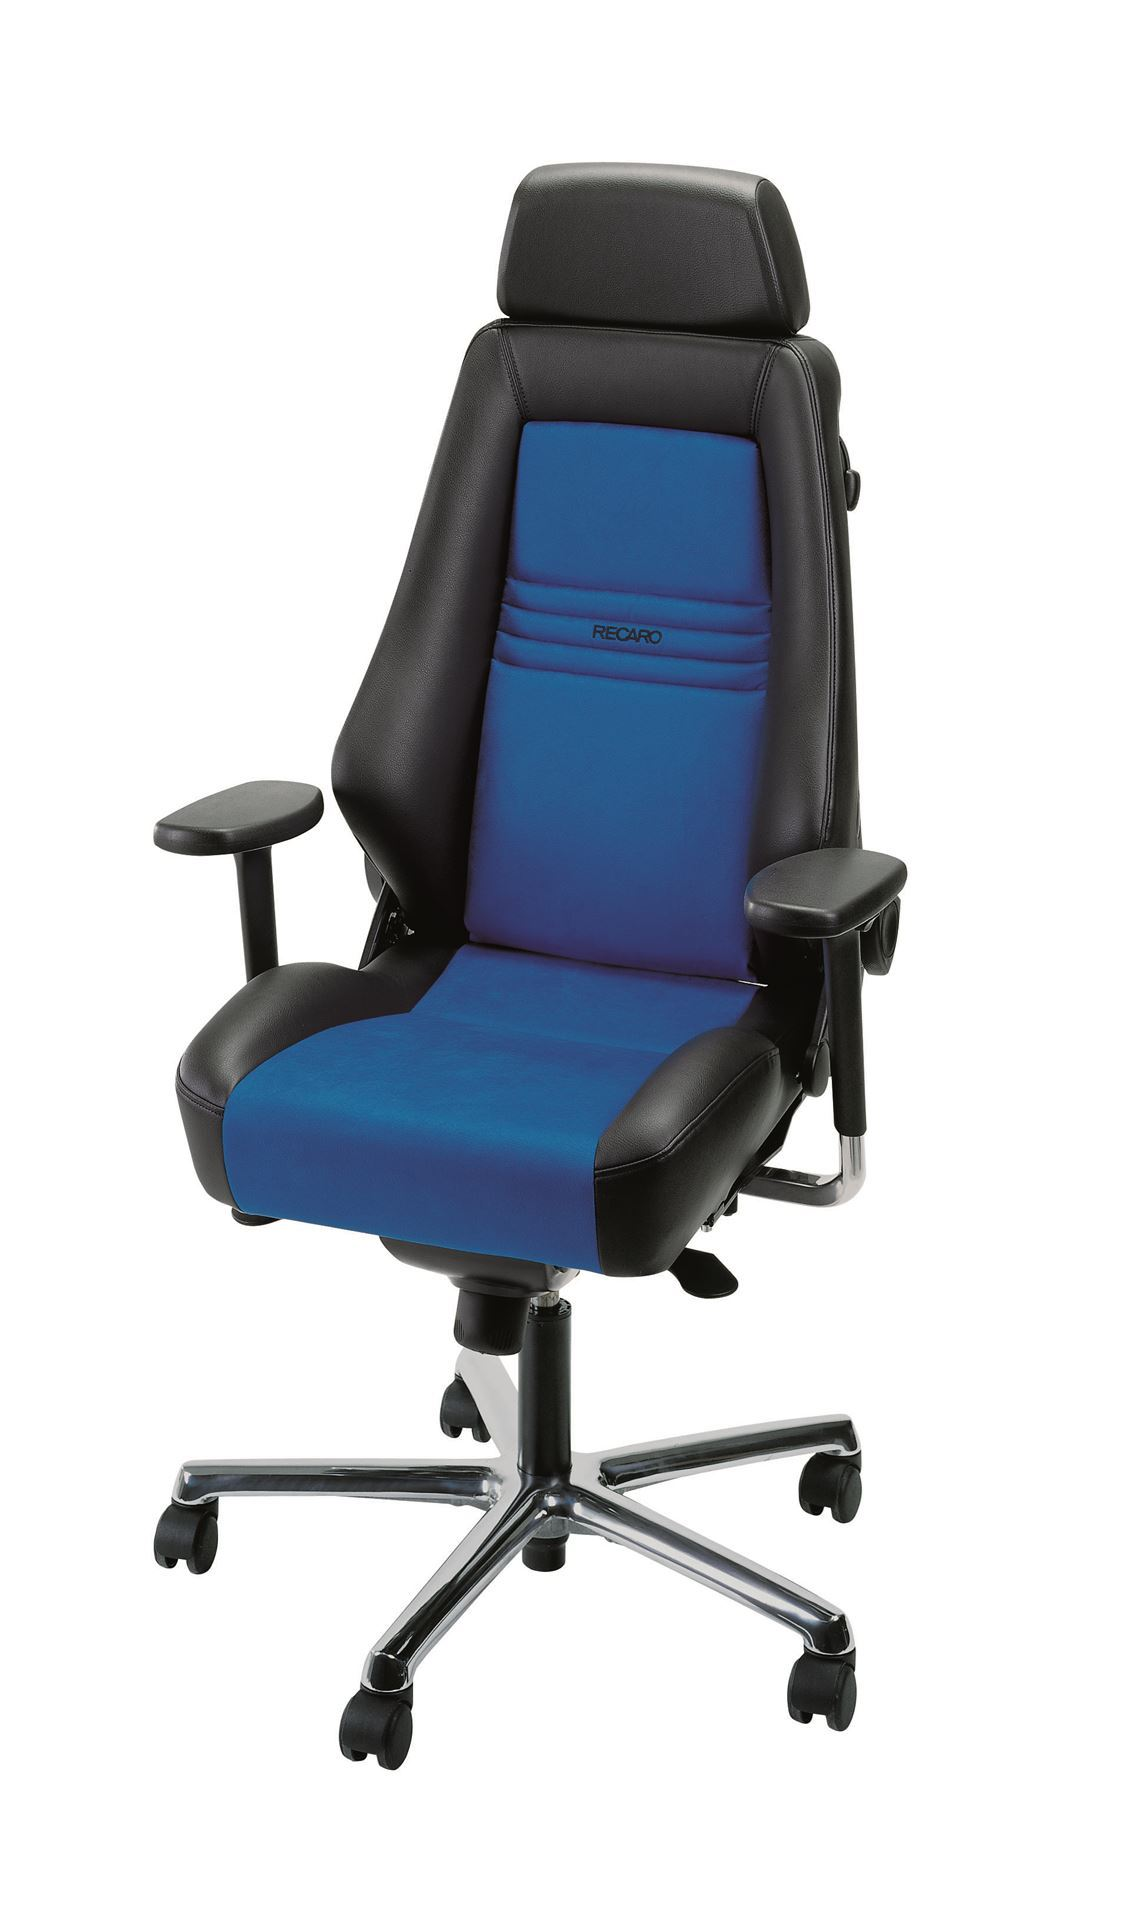 Capital Seating And Vision Seating Vision And Accessories For Hardworking Environments Recaro Specialist Office Chair